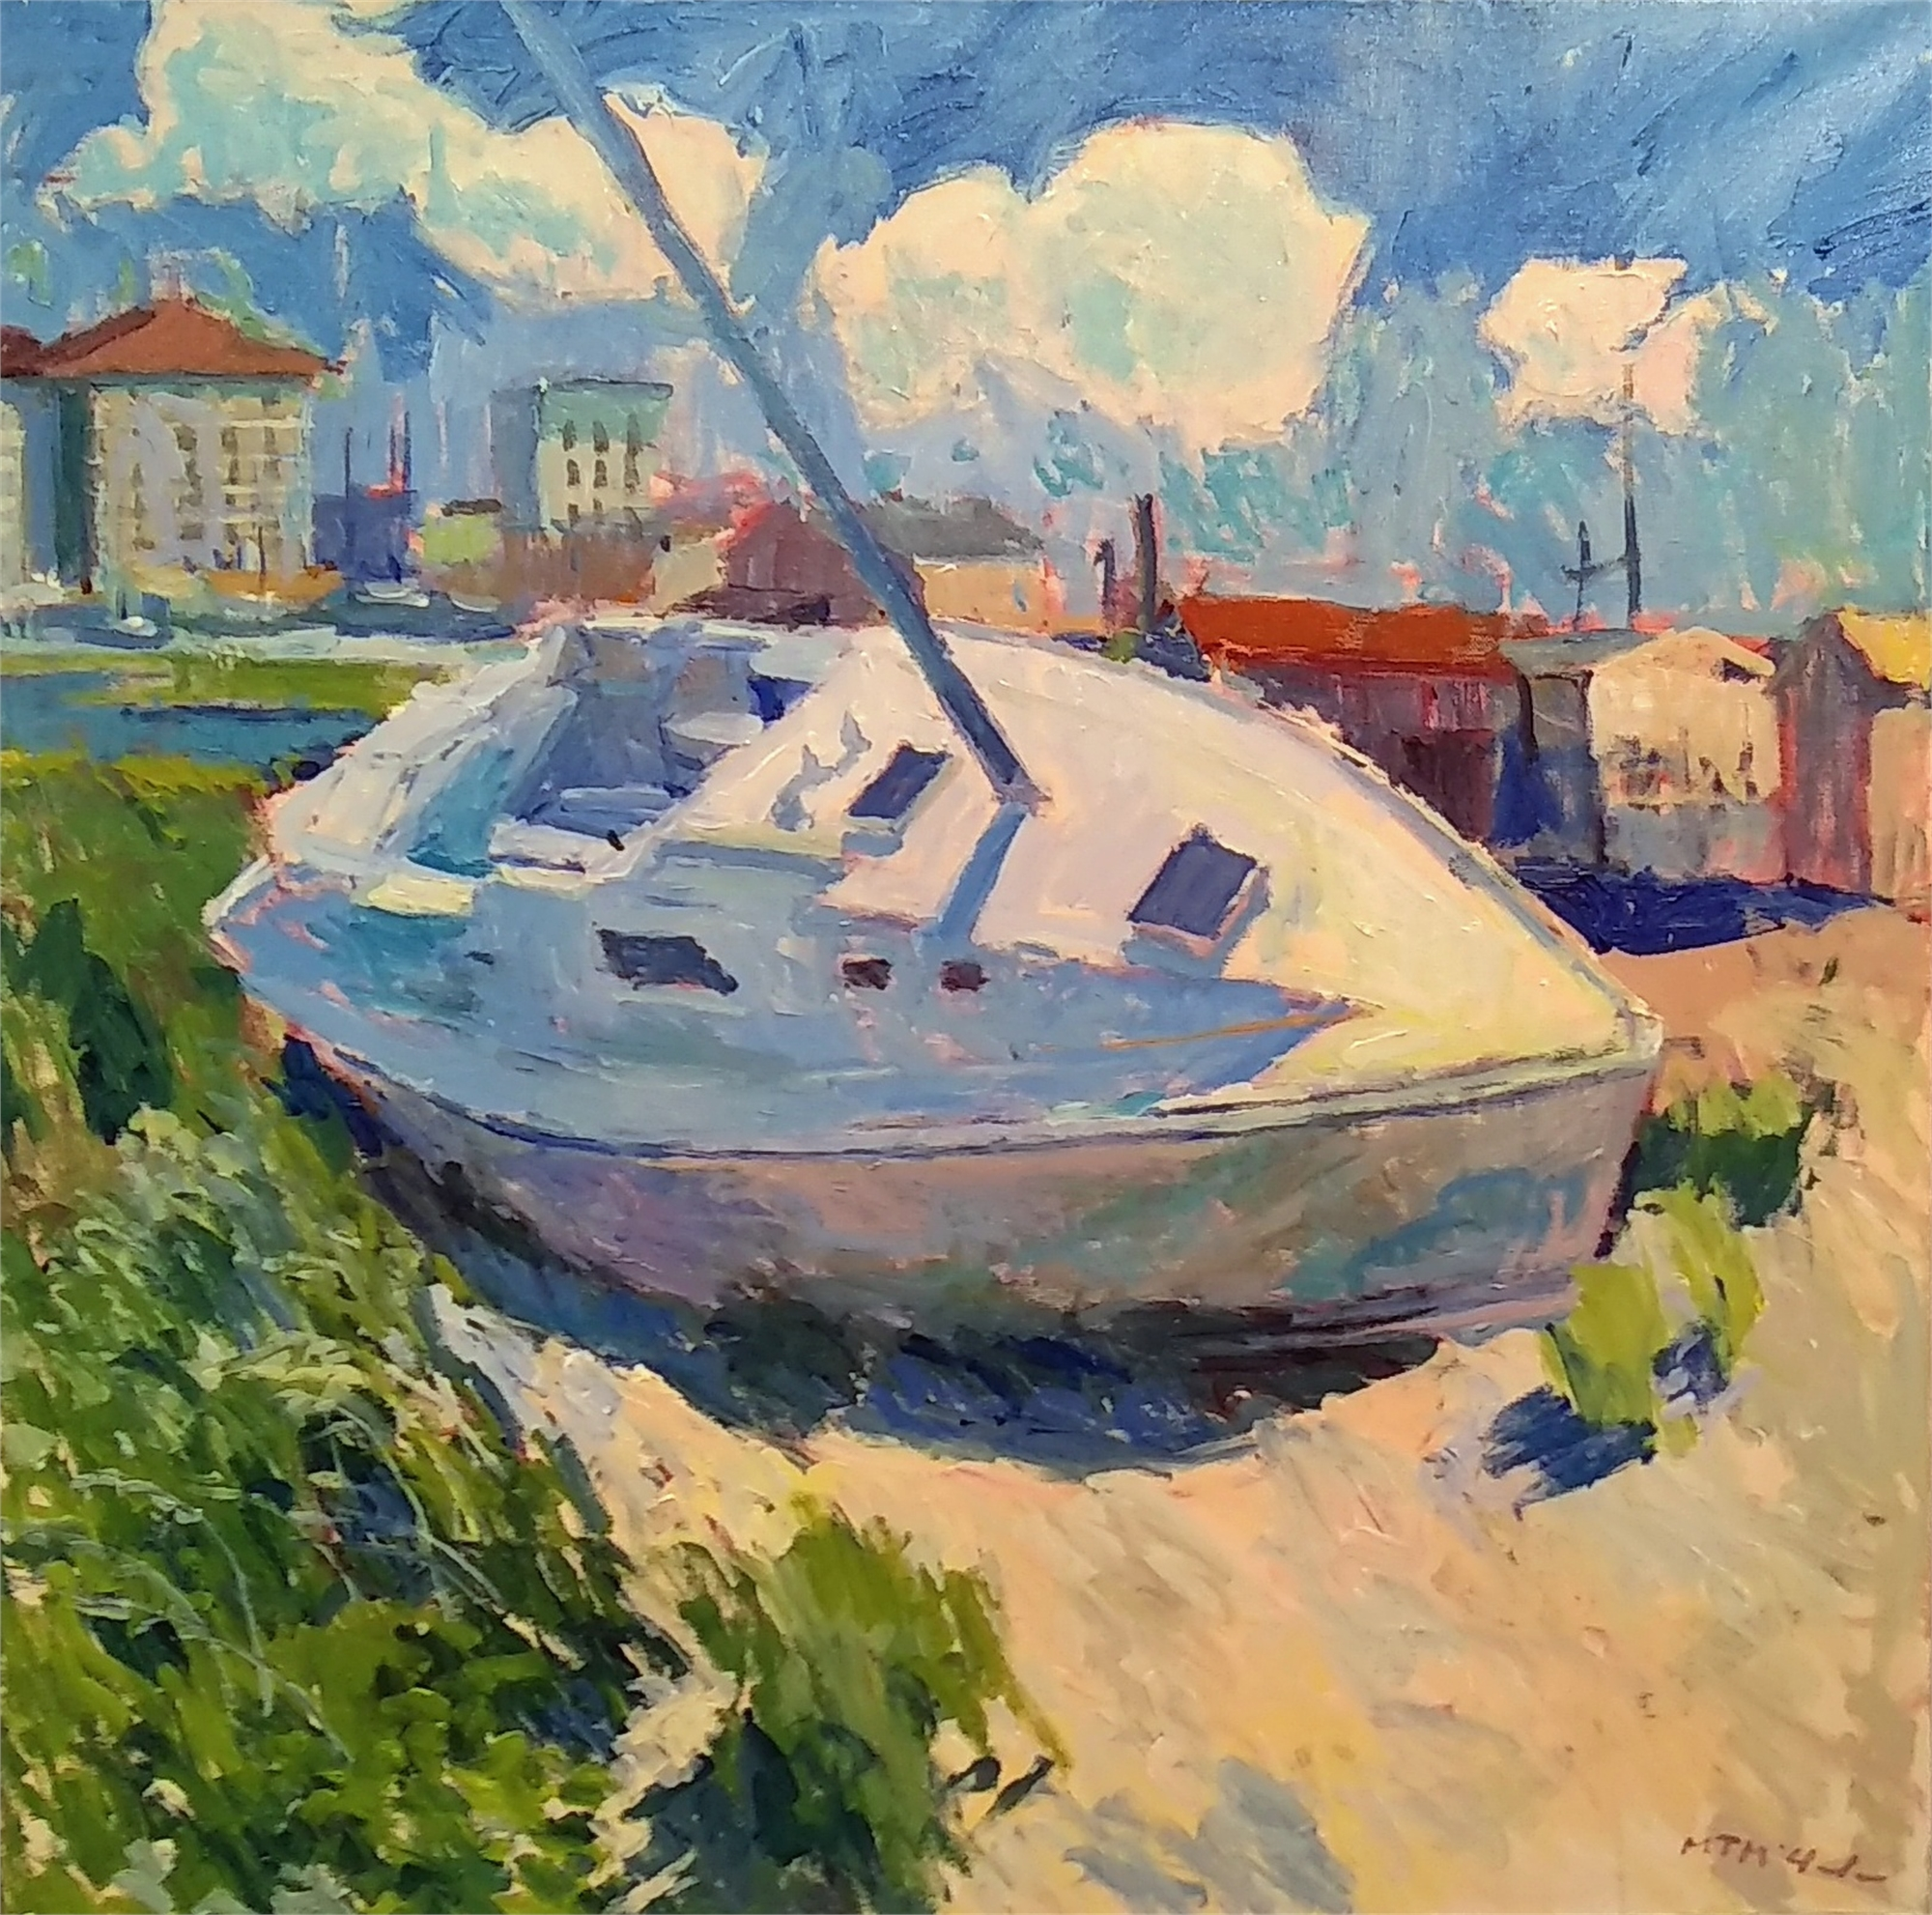 Beached Sailboat by M.T. McClanahan